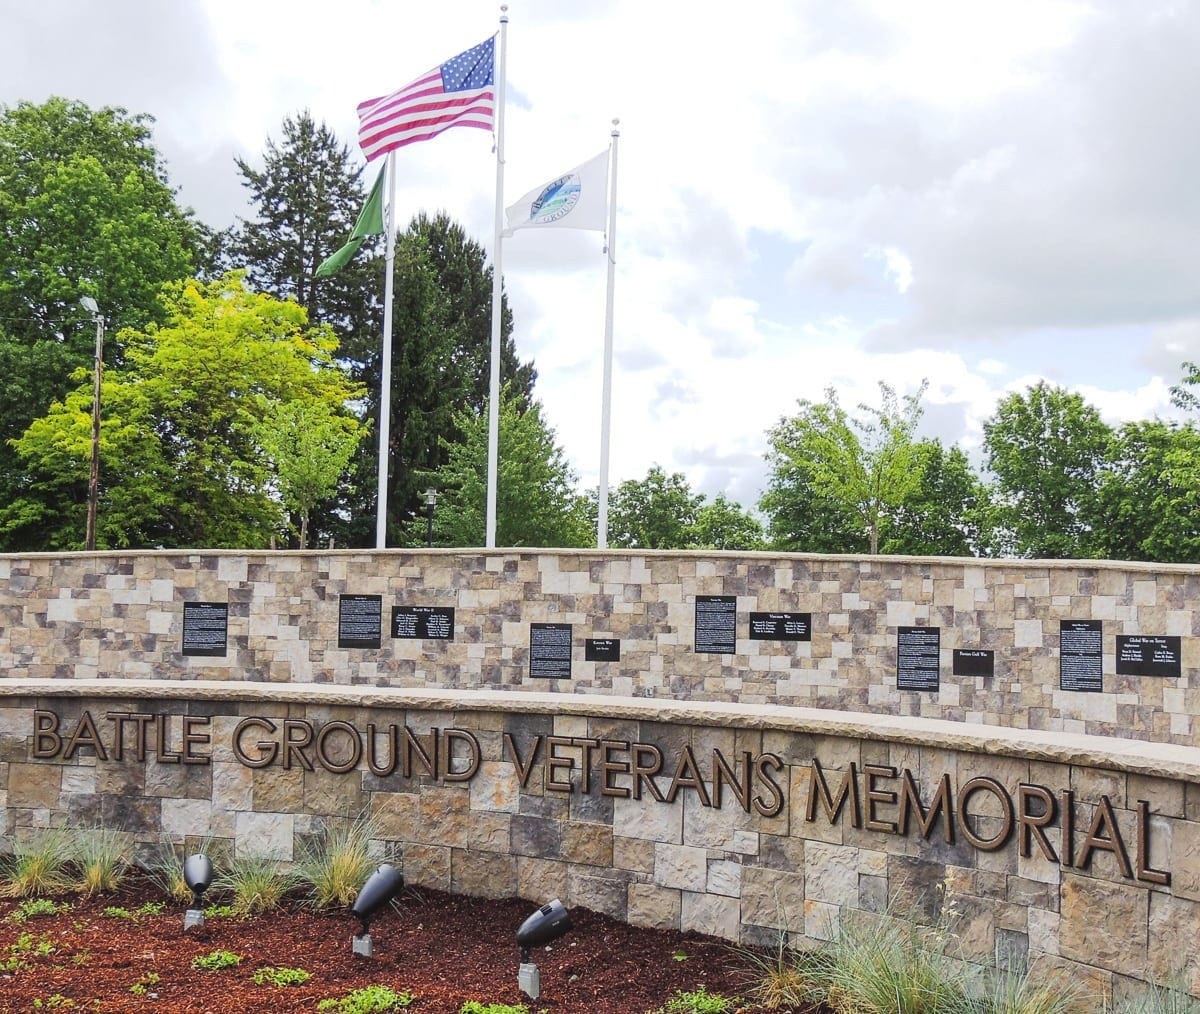 In memory of the 31 Battle Ground natives who died in the line of duty and whose names are engraved in the memorial, residents are invited to attend a reading of the names of these fallen soldiers Mon., May 28 at 11 a.m. in Kiwanis Park. Photo courtesy of the City of Battle Ground